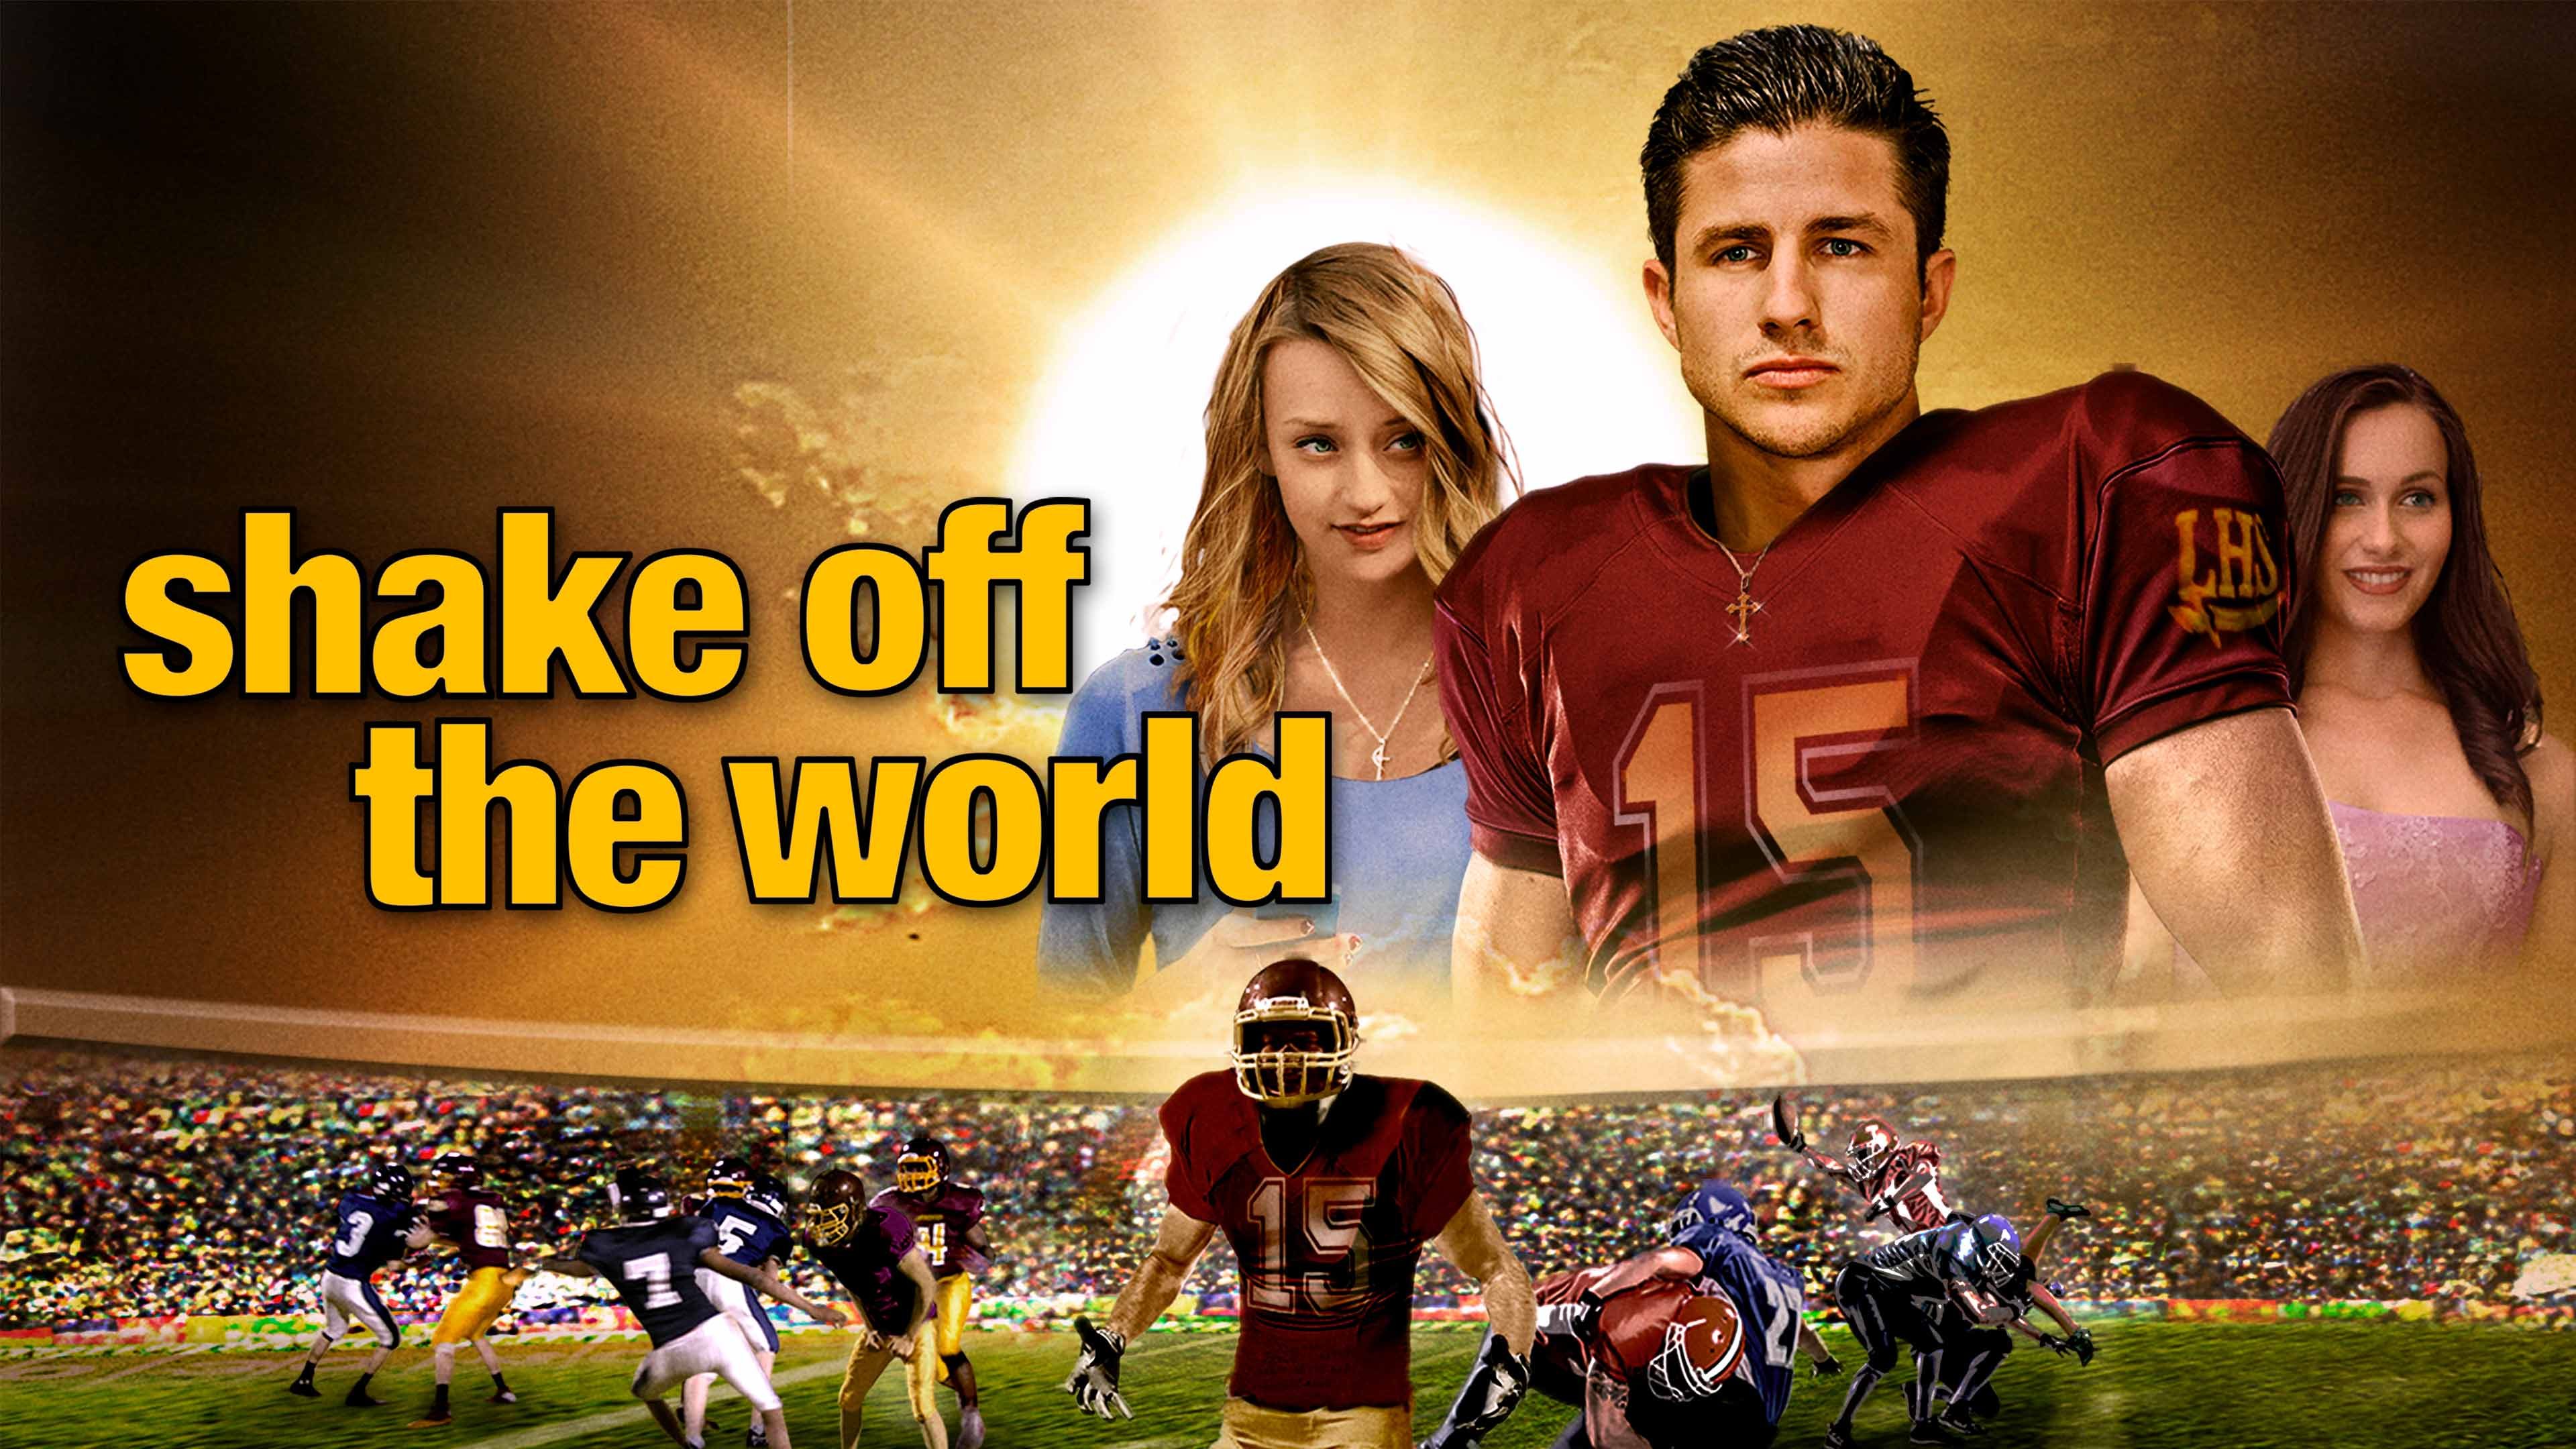 Shake Off The World Trailer